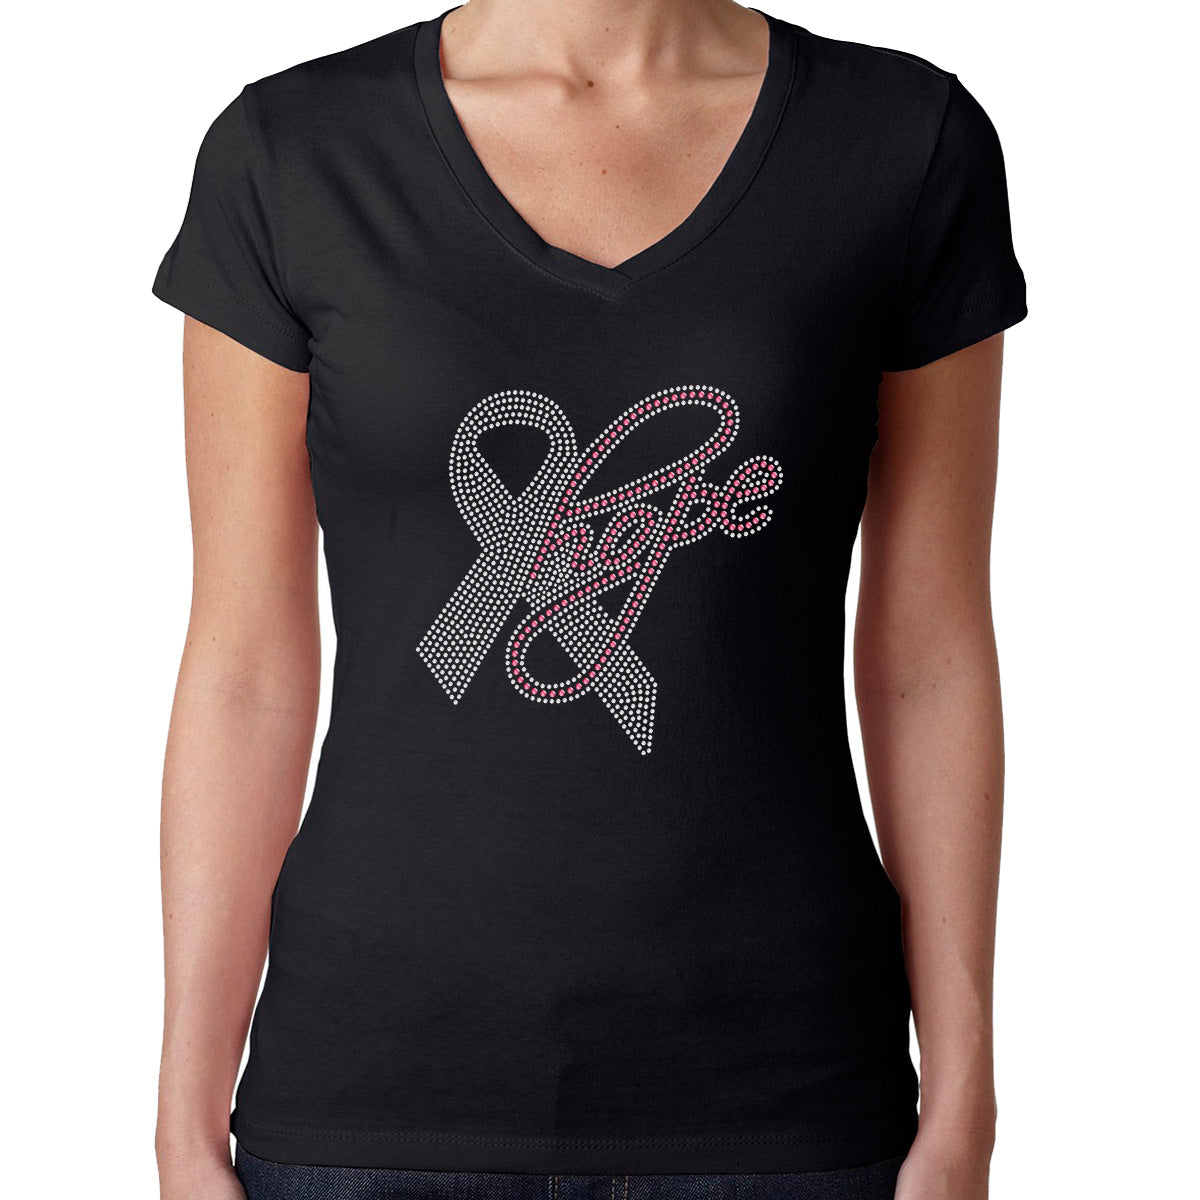 Womens T-Shirt Rhinestone Bling Black Fitted Tee Hope Pink Ribbon